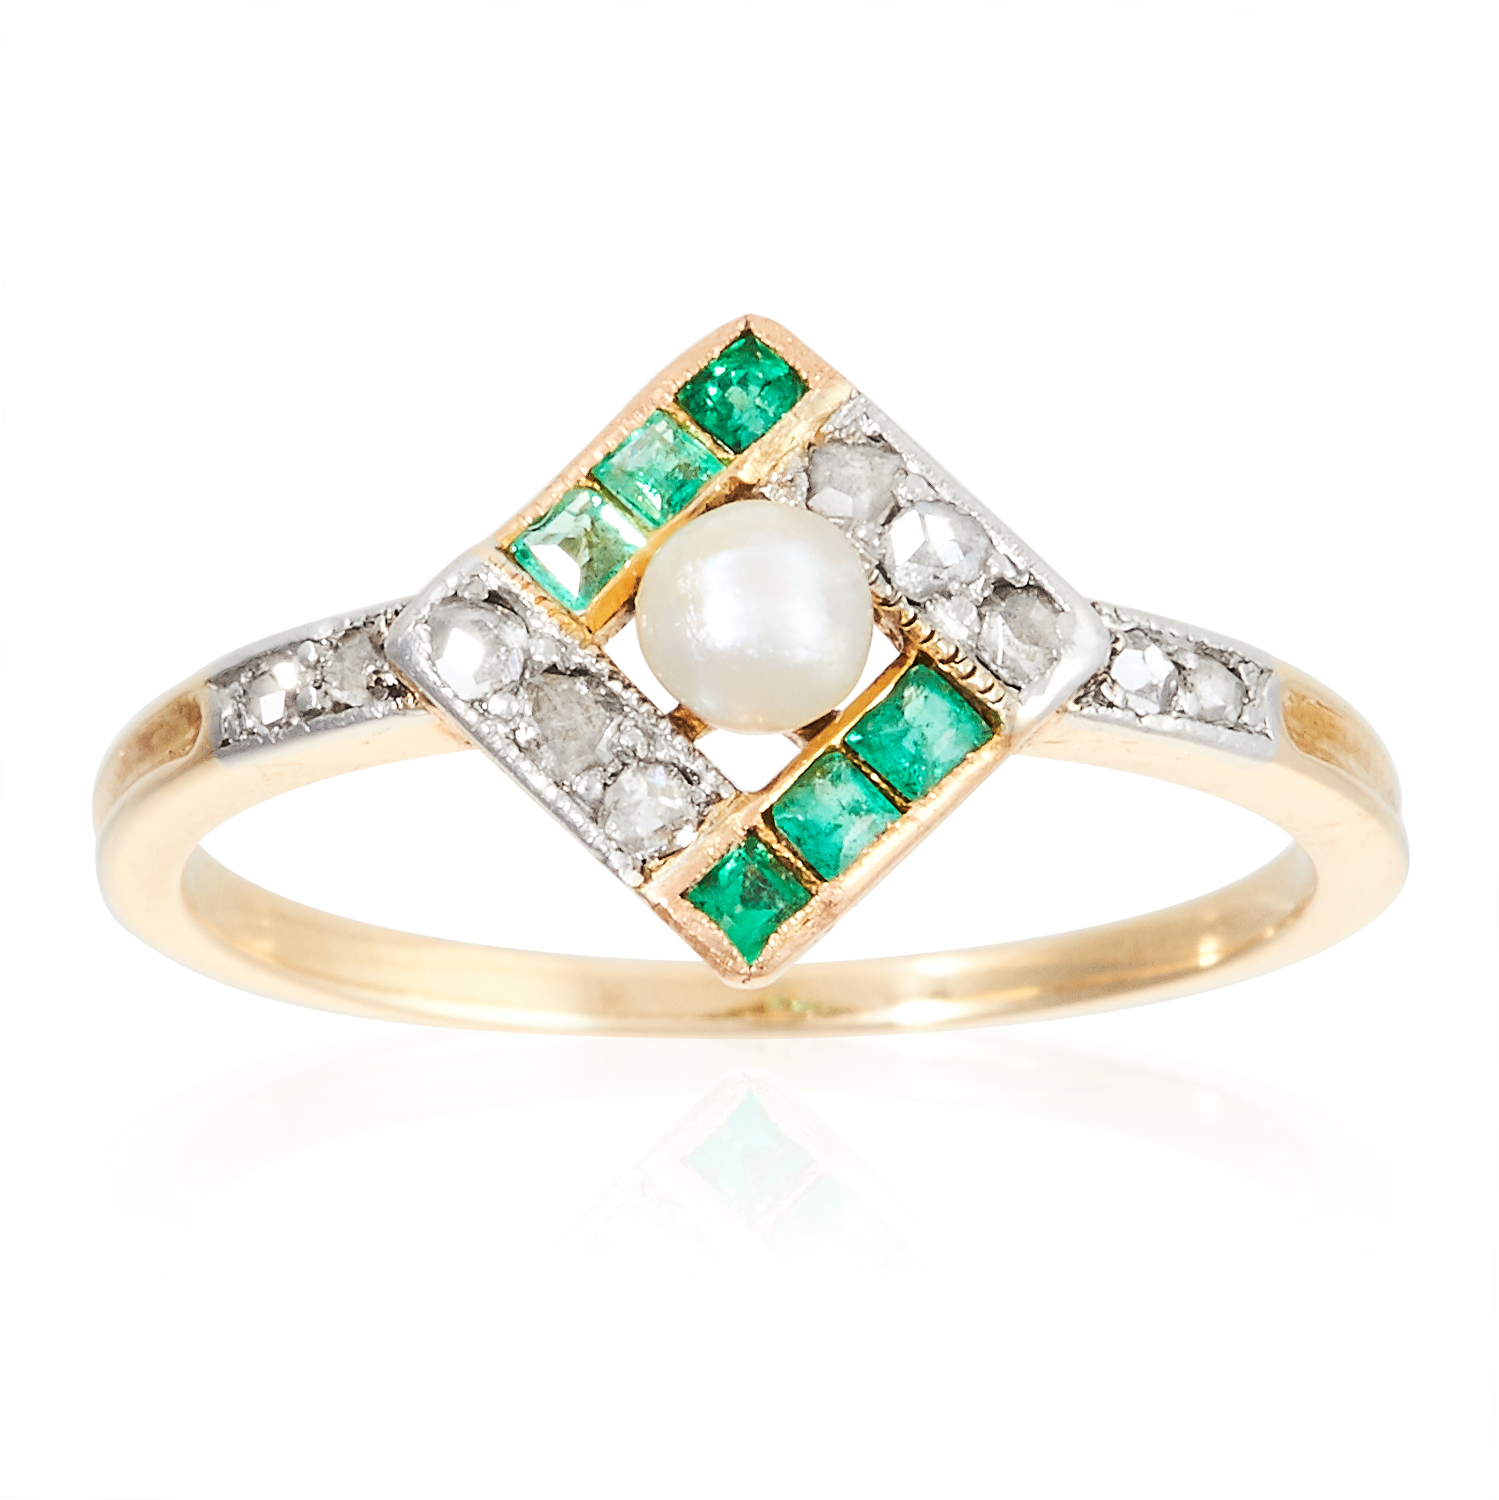 AN ART DECO PEARL, EMERALD AND DIAMOND RING in 18ct yellow gold, the central pearl within a